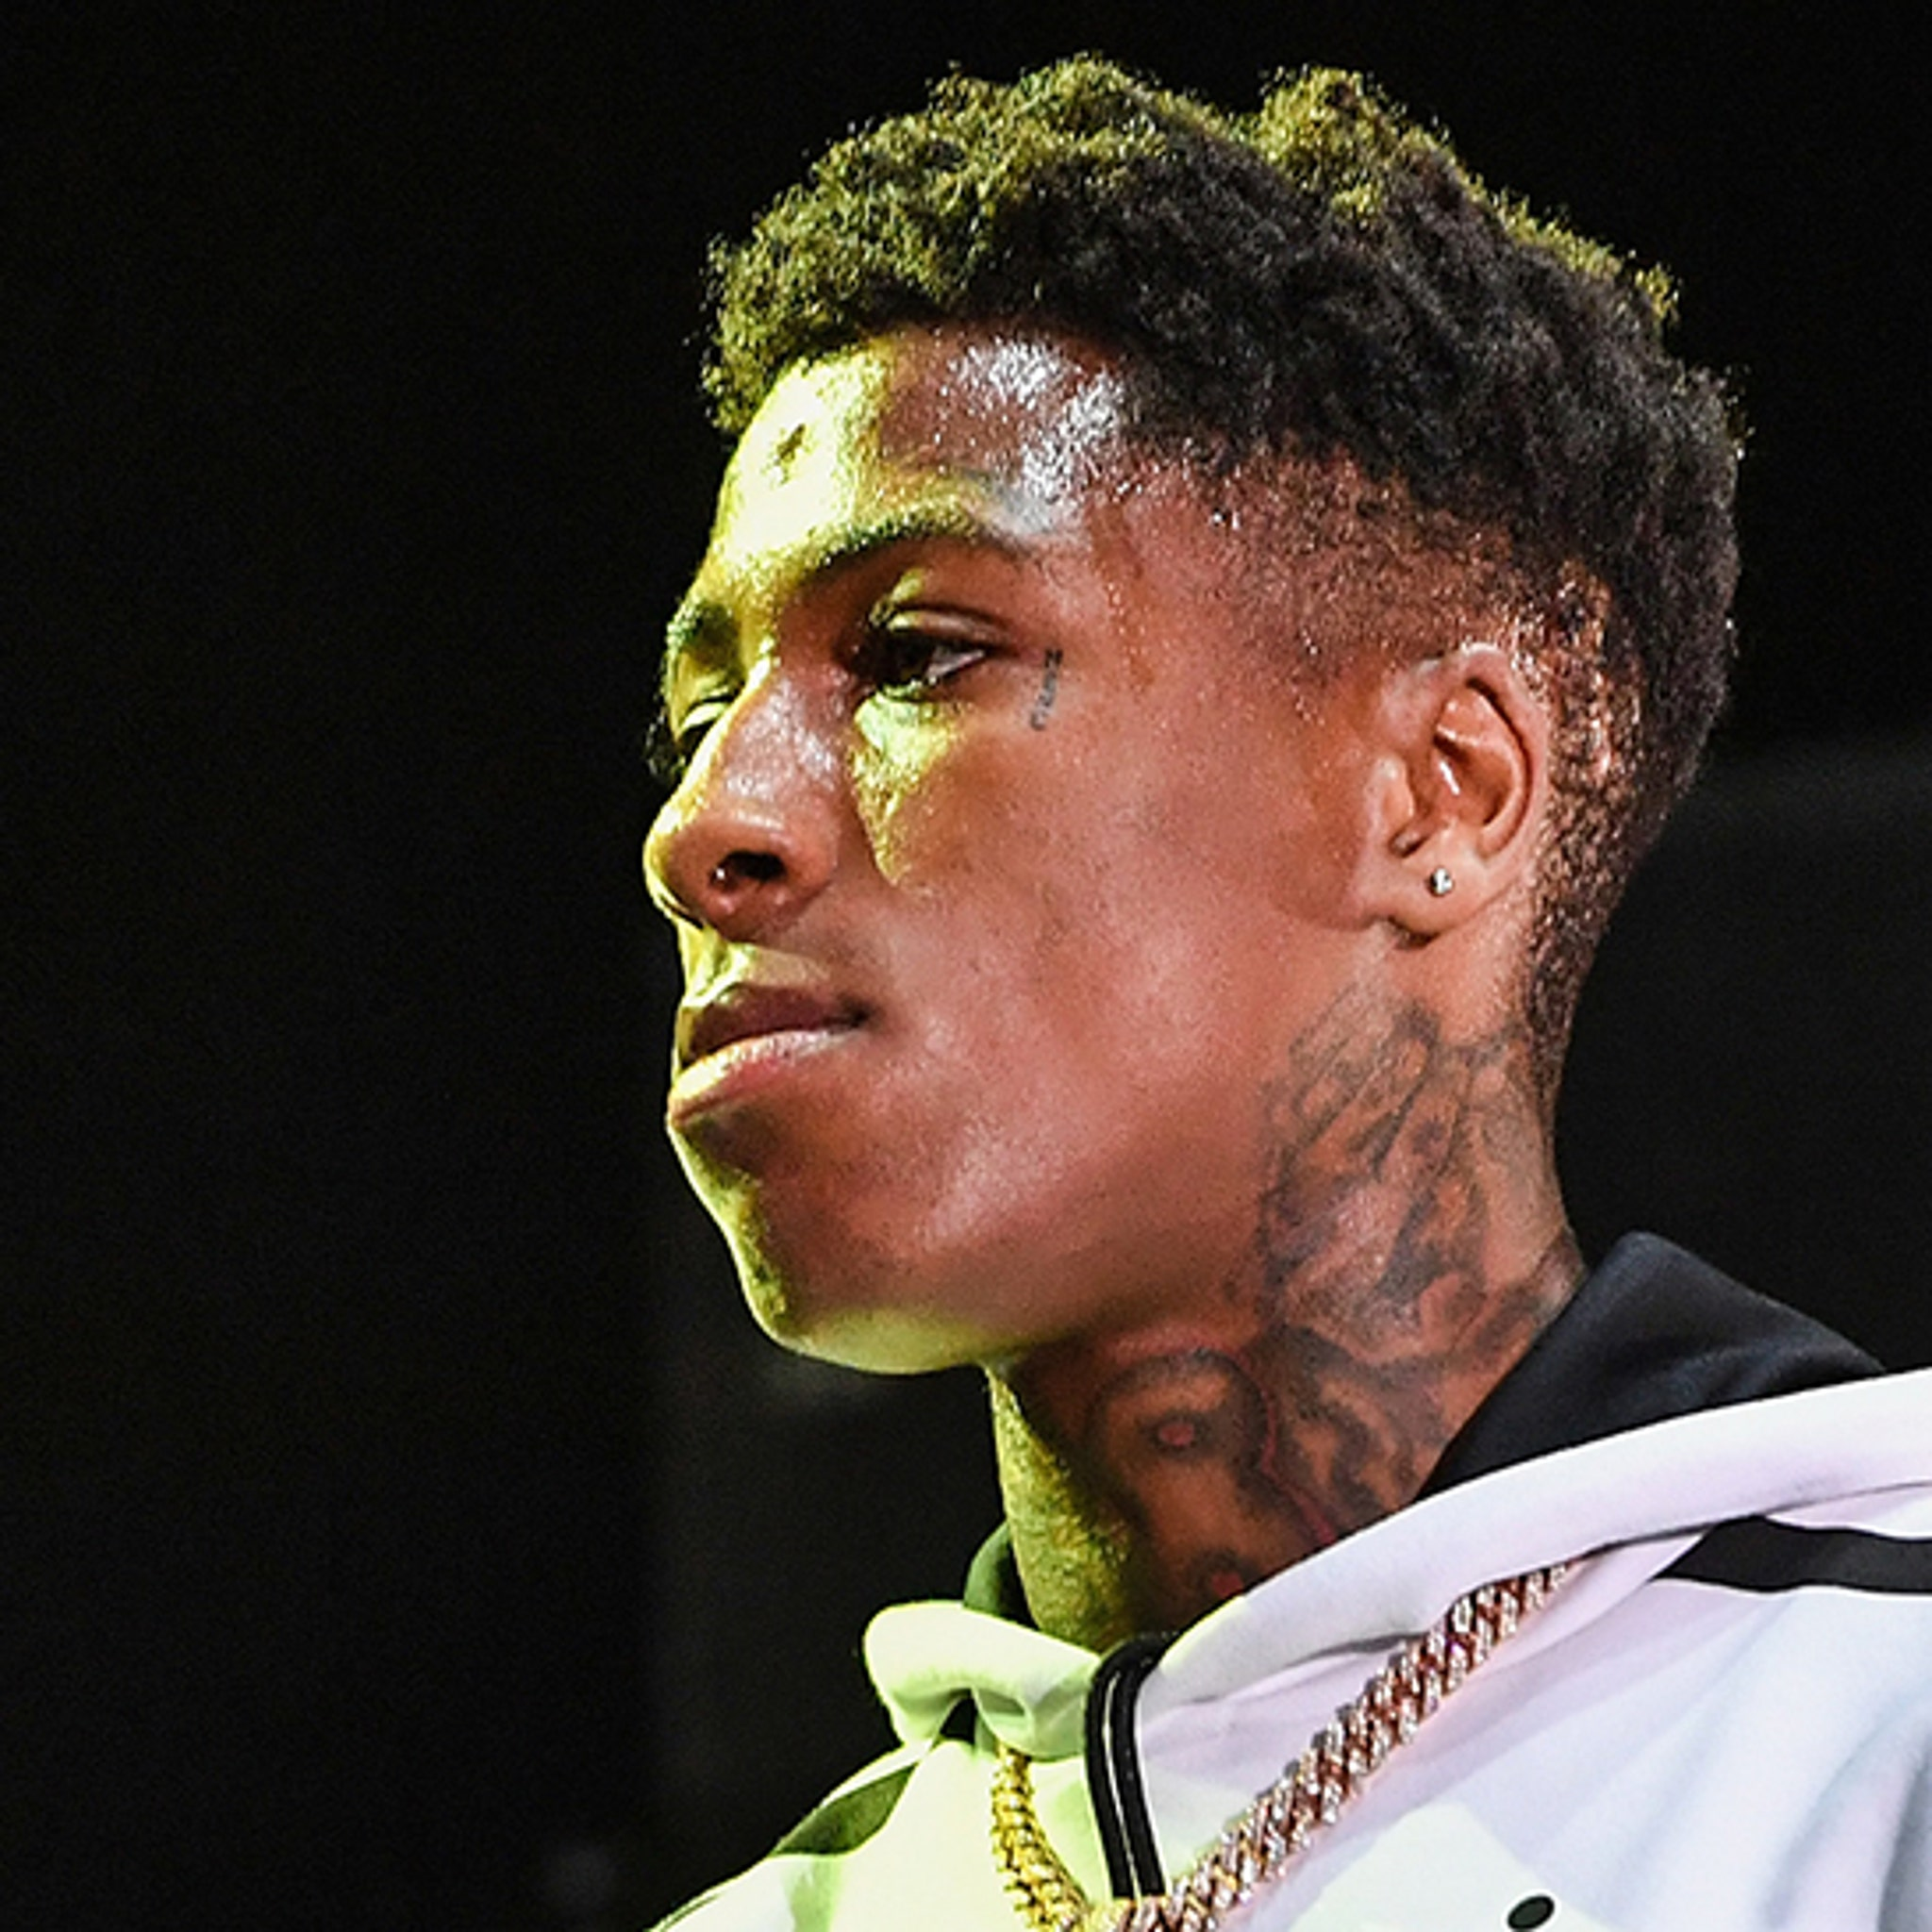 Rapper Nba Youngboy Goes Nuts Fighting Fan At Concert